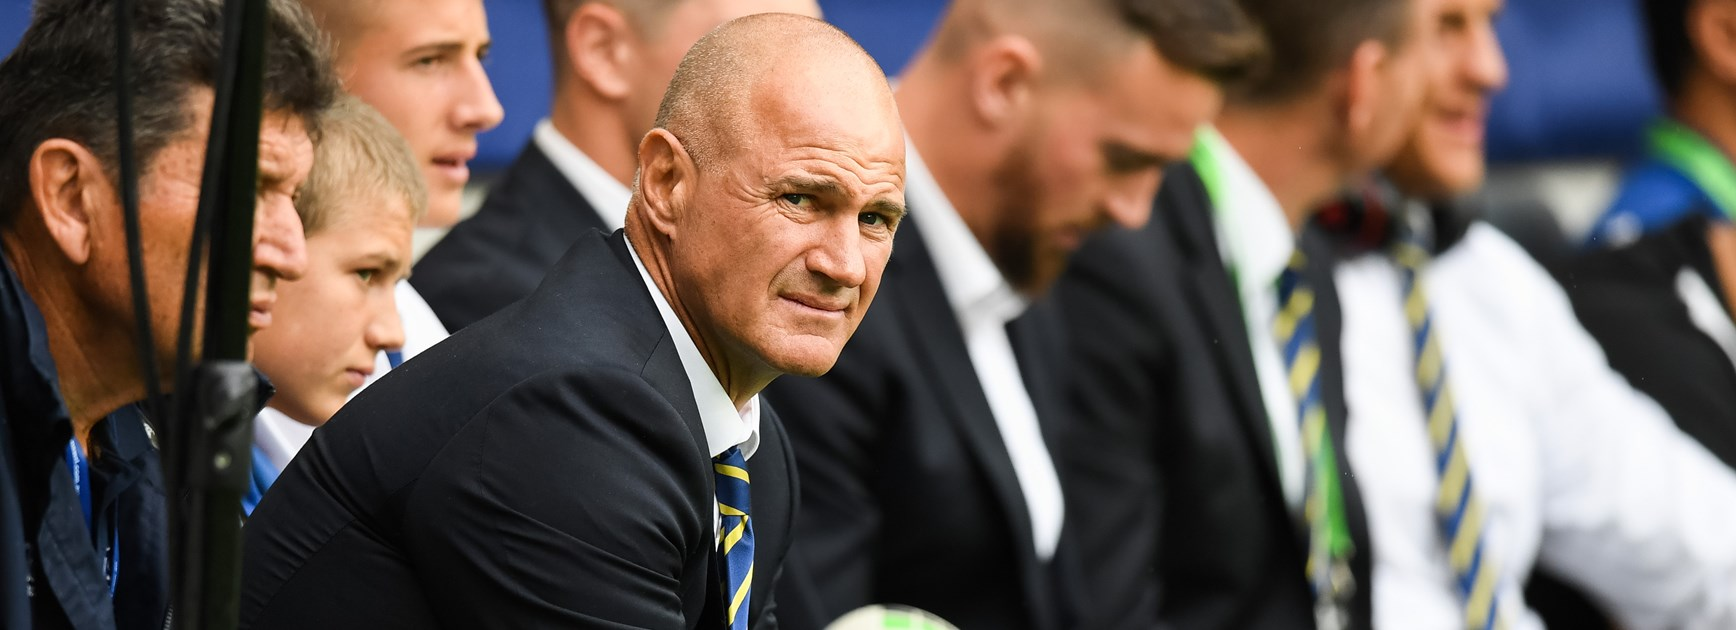 October 16: Rabbitohs reject Sharks & Eels sign Brad Arthur